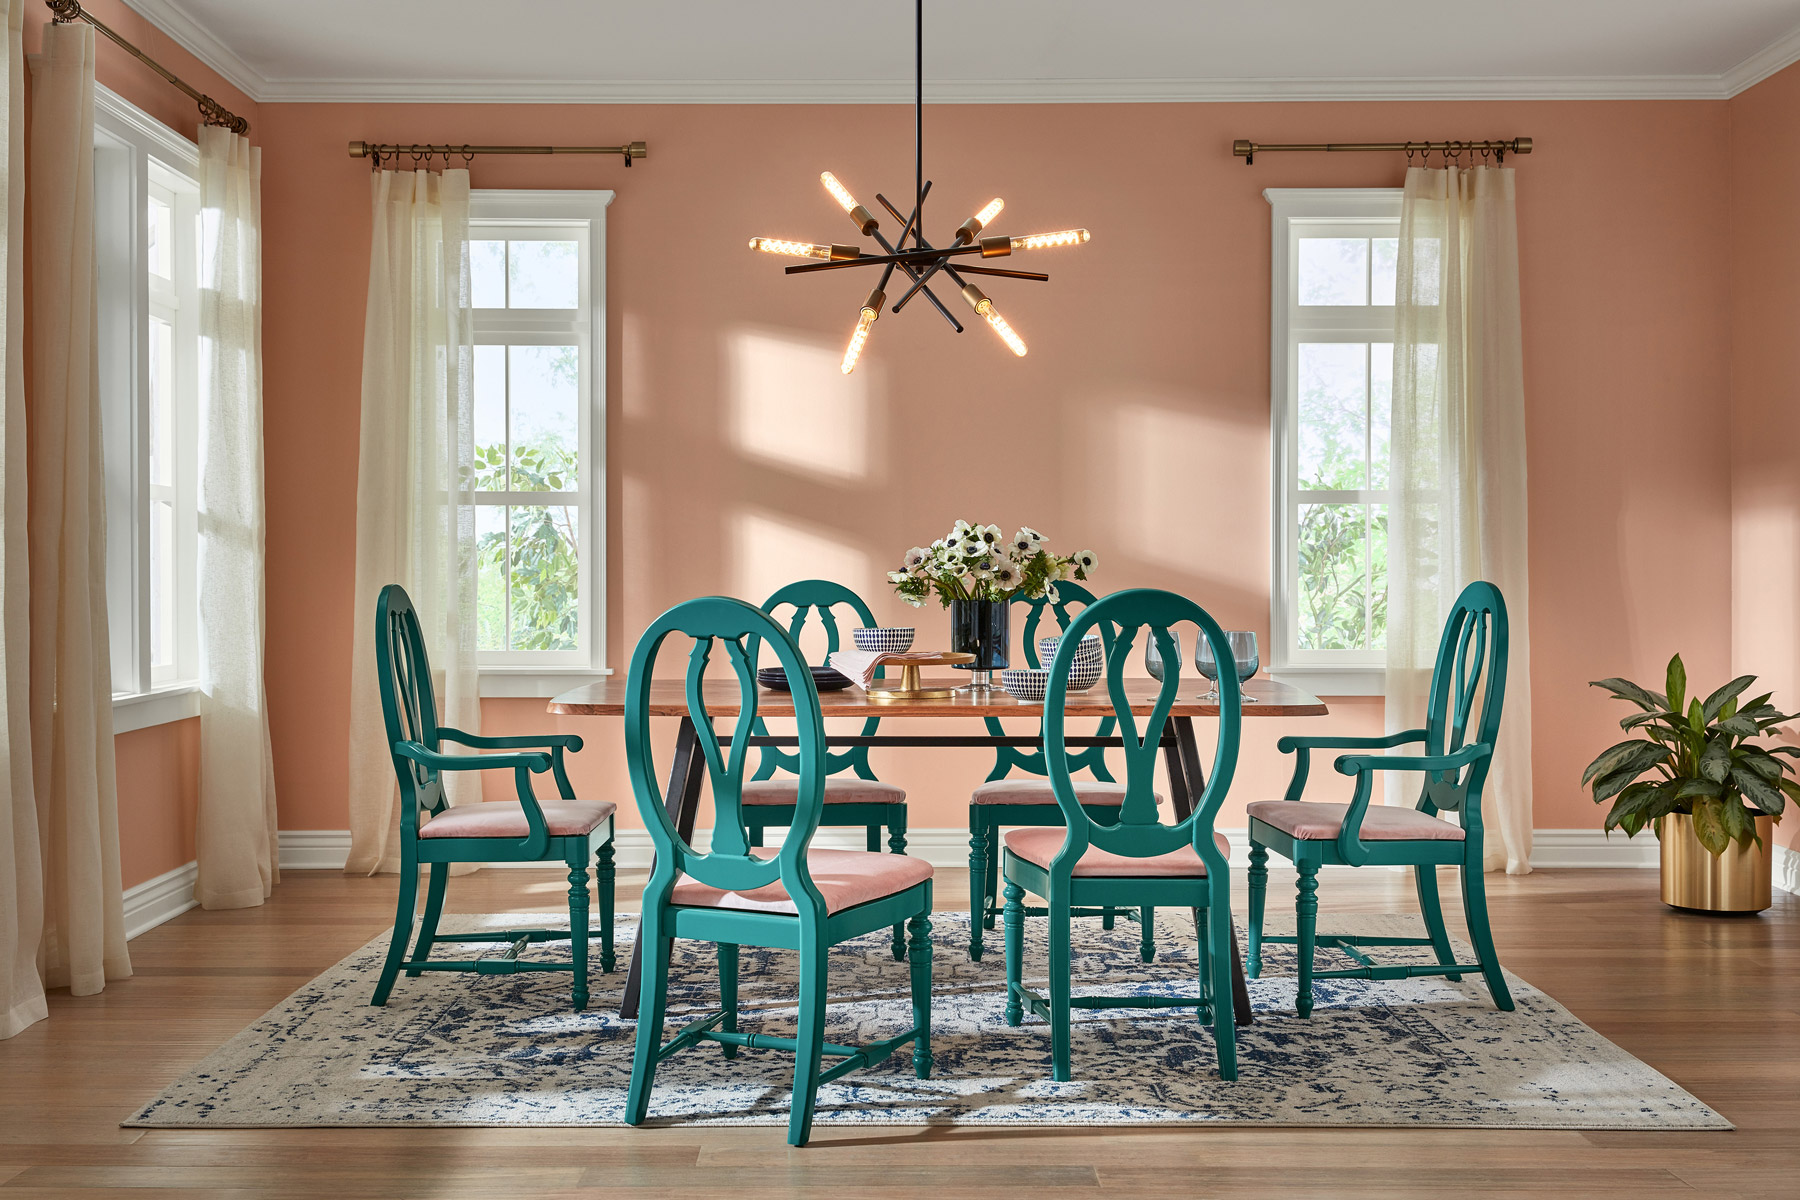 Interior Paint Colors 2020.All The Color Of The Year 2020 Predictions So Far Real Simple